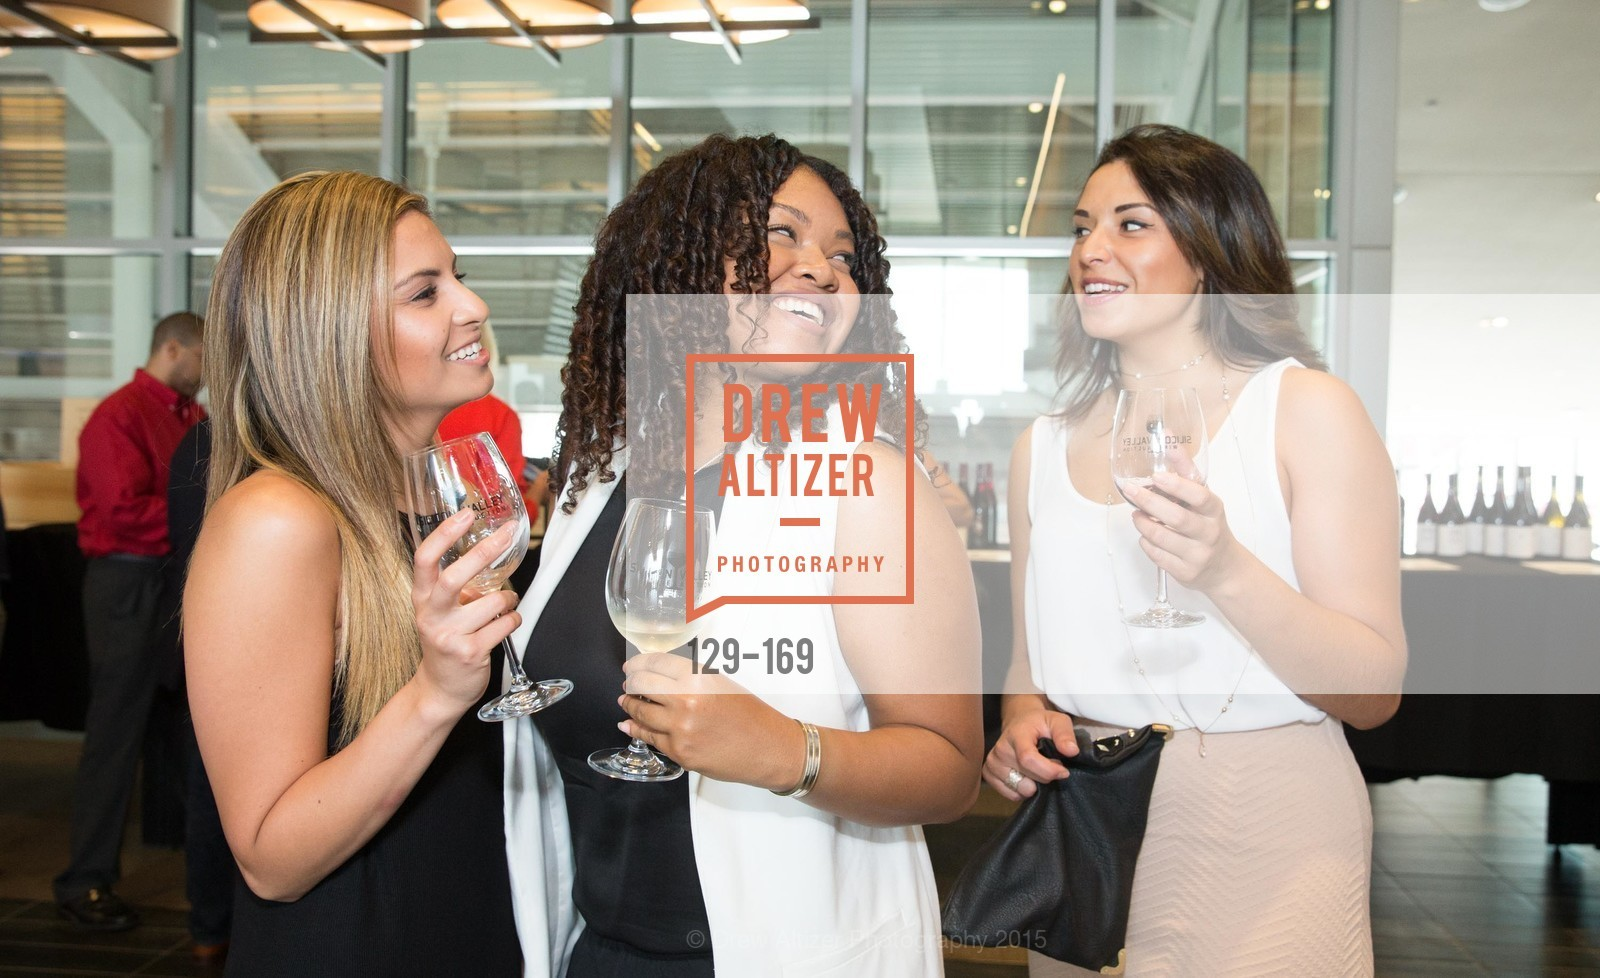 Victoria Astari, Mikaela Martin, Margie Galeano, Silicon Valley Wine Auction Benefiting Silicon Valley Education Foundation, Levi's Stadium. 4900 Marie P. DeBartolo Way, June 19th, 2015,Drew Altizer, Drew Altizer Photography, full-service agency, private events, San Francisco photographer, photographer california